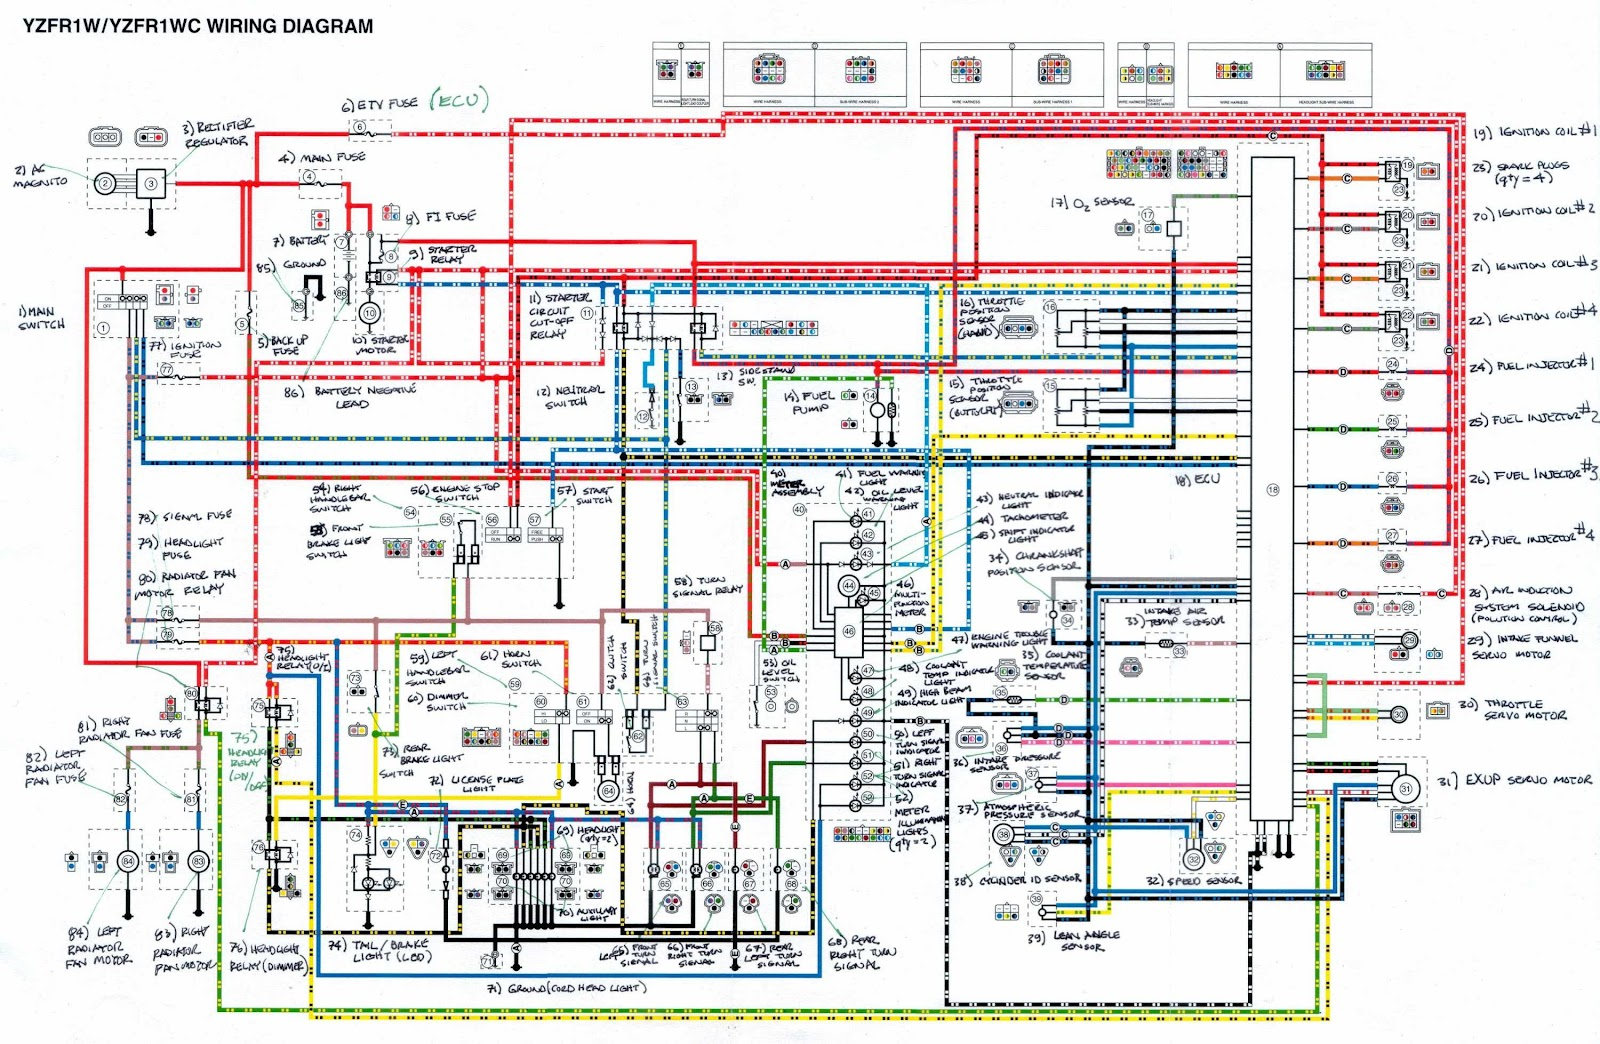 small resolution of yamaha v star fuse box auto electrical wiring diagram 1994 yamaha v star 1100 2005 yamaha